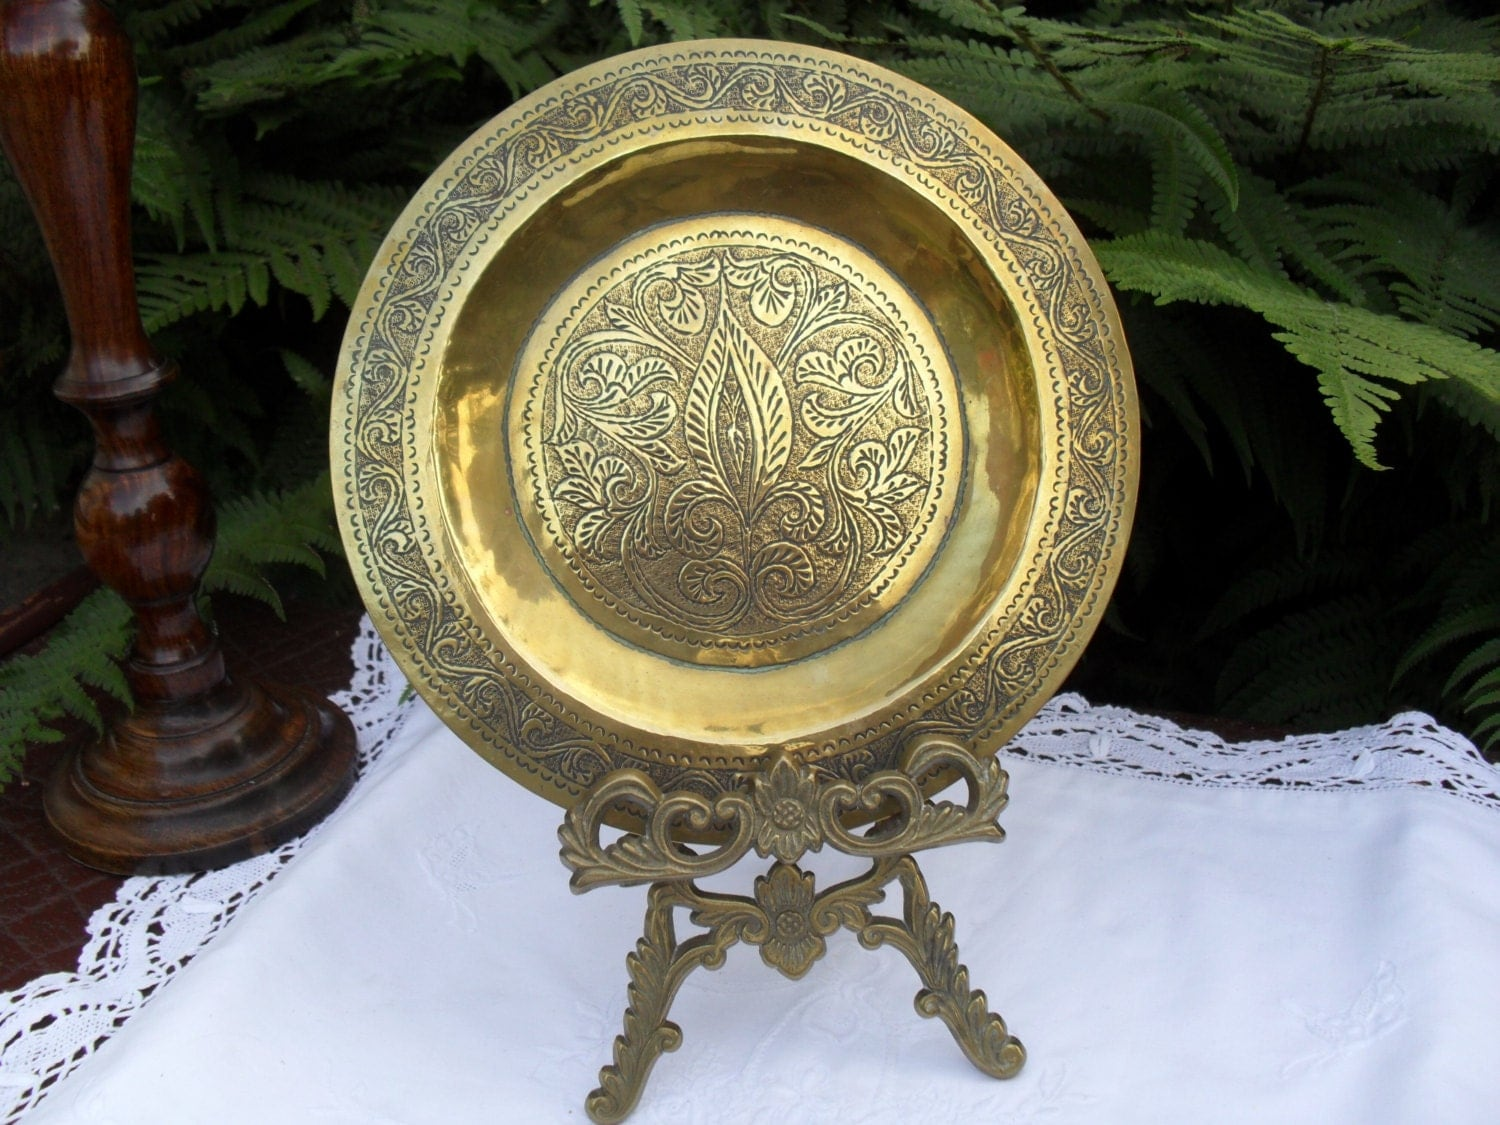 Brass Wall Plates Decor : Vintage brass wall plate decor engraved by